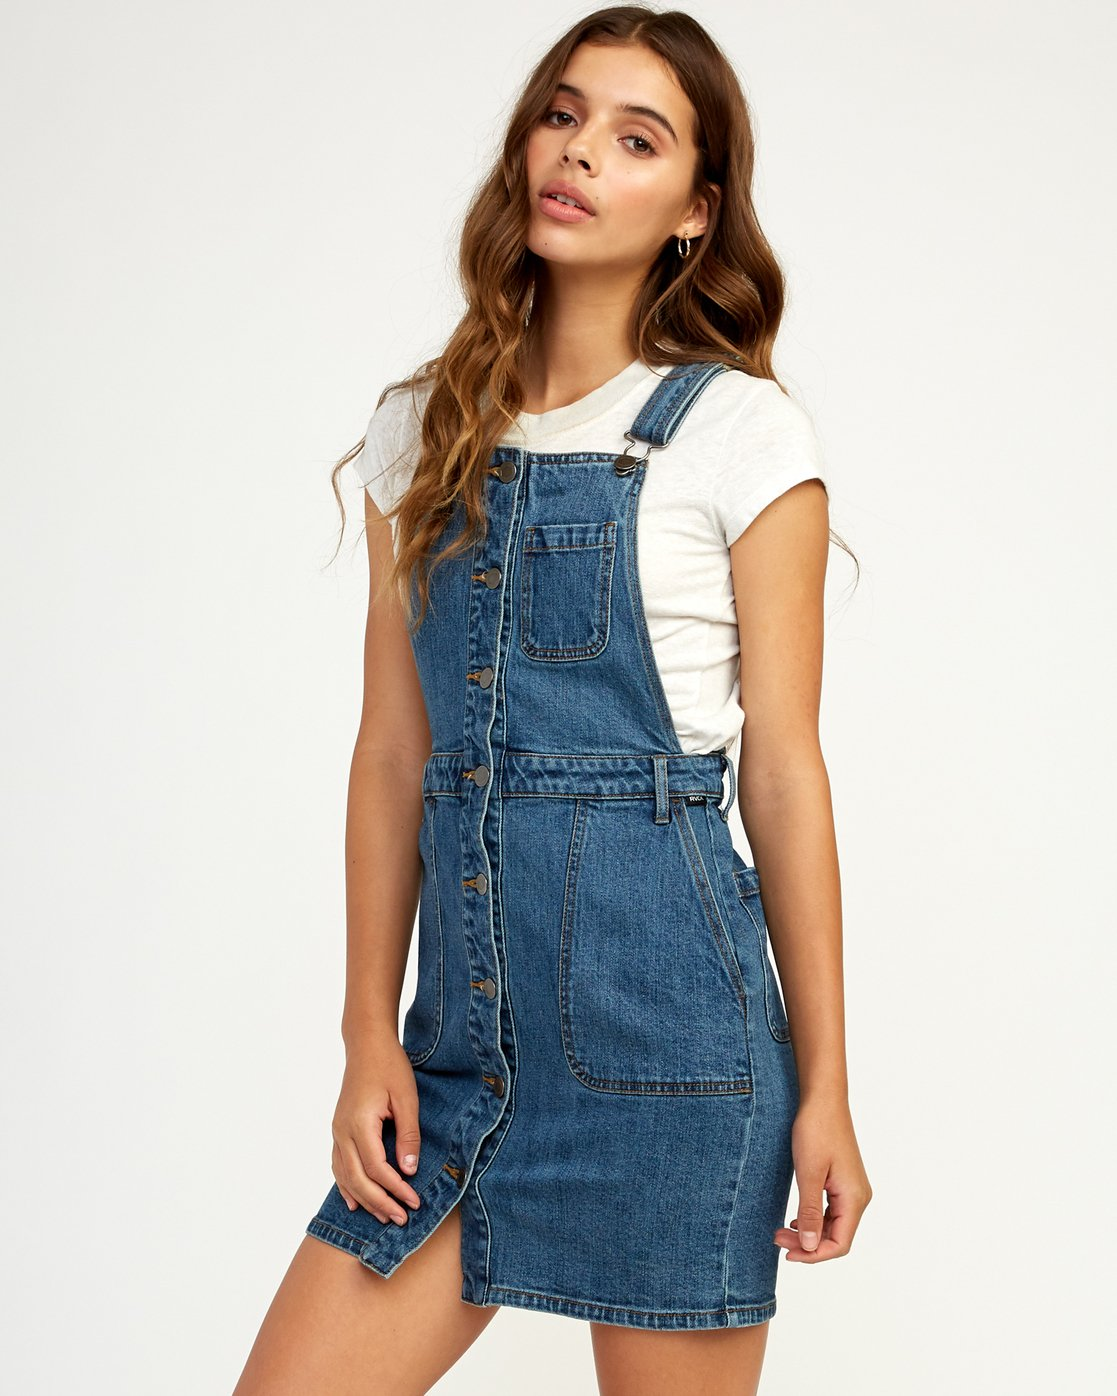 68889517561 Denim Overall Dress - Photo Dress Wallpaper HD AOrg